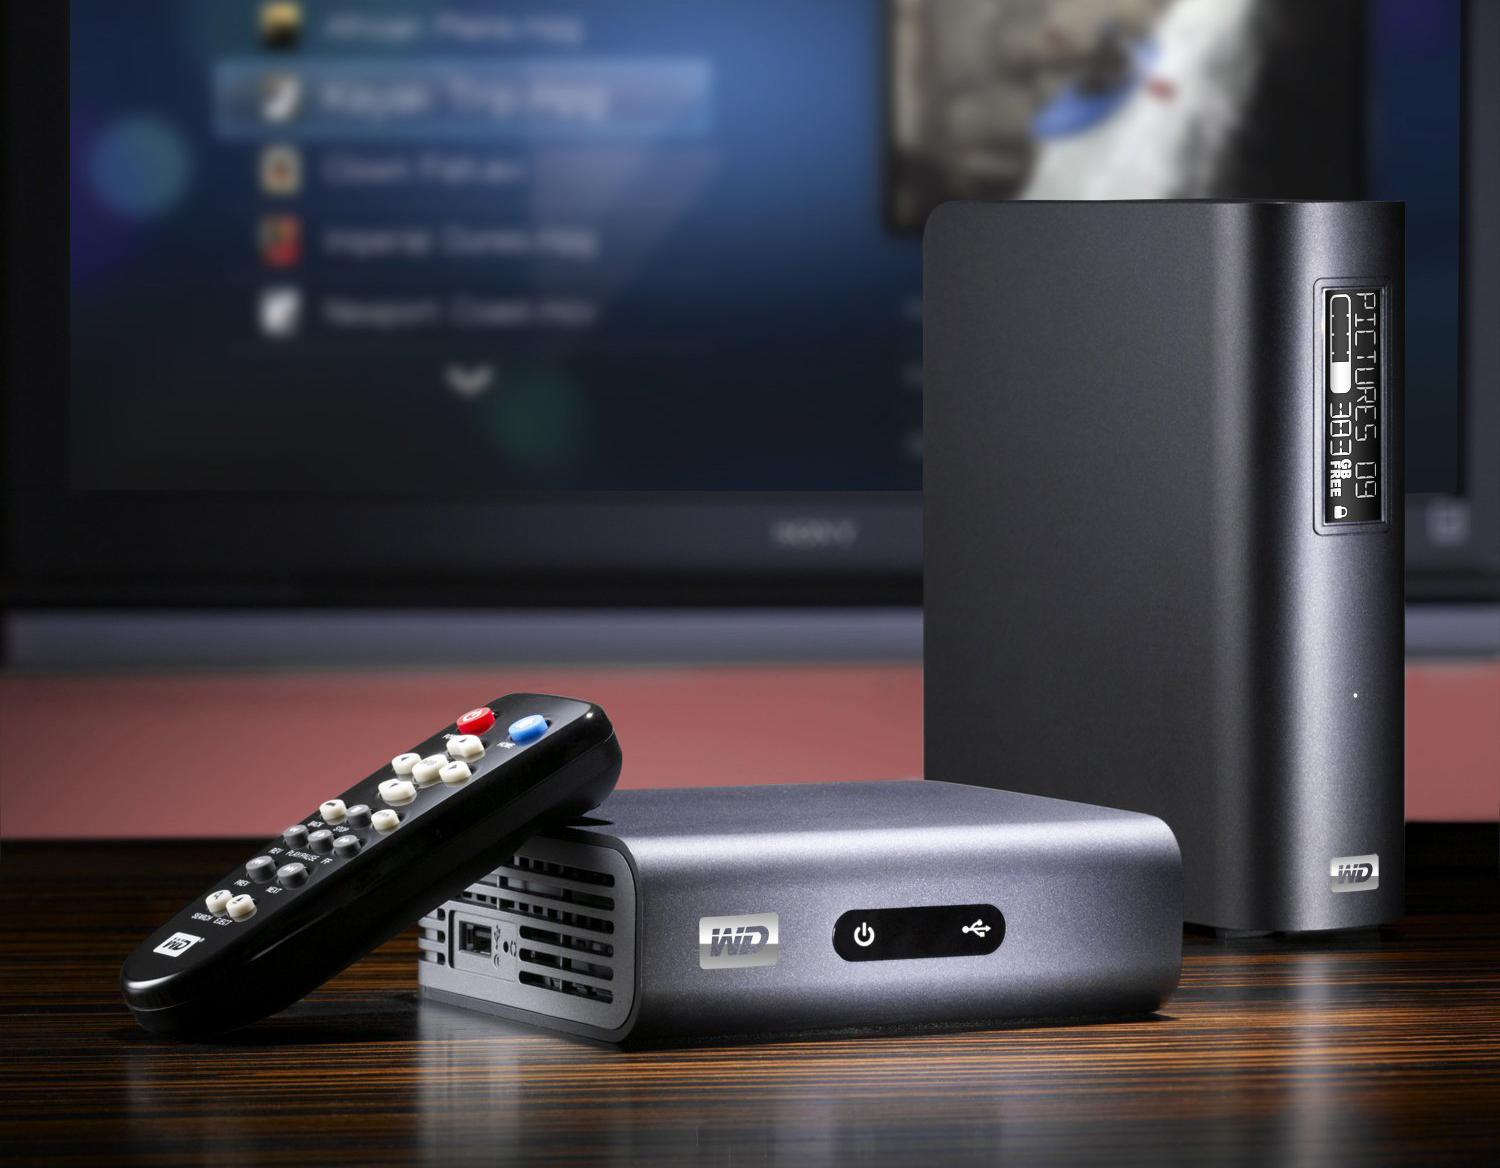 wd-tv-live-plus-display-with-external-hard-drive2